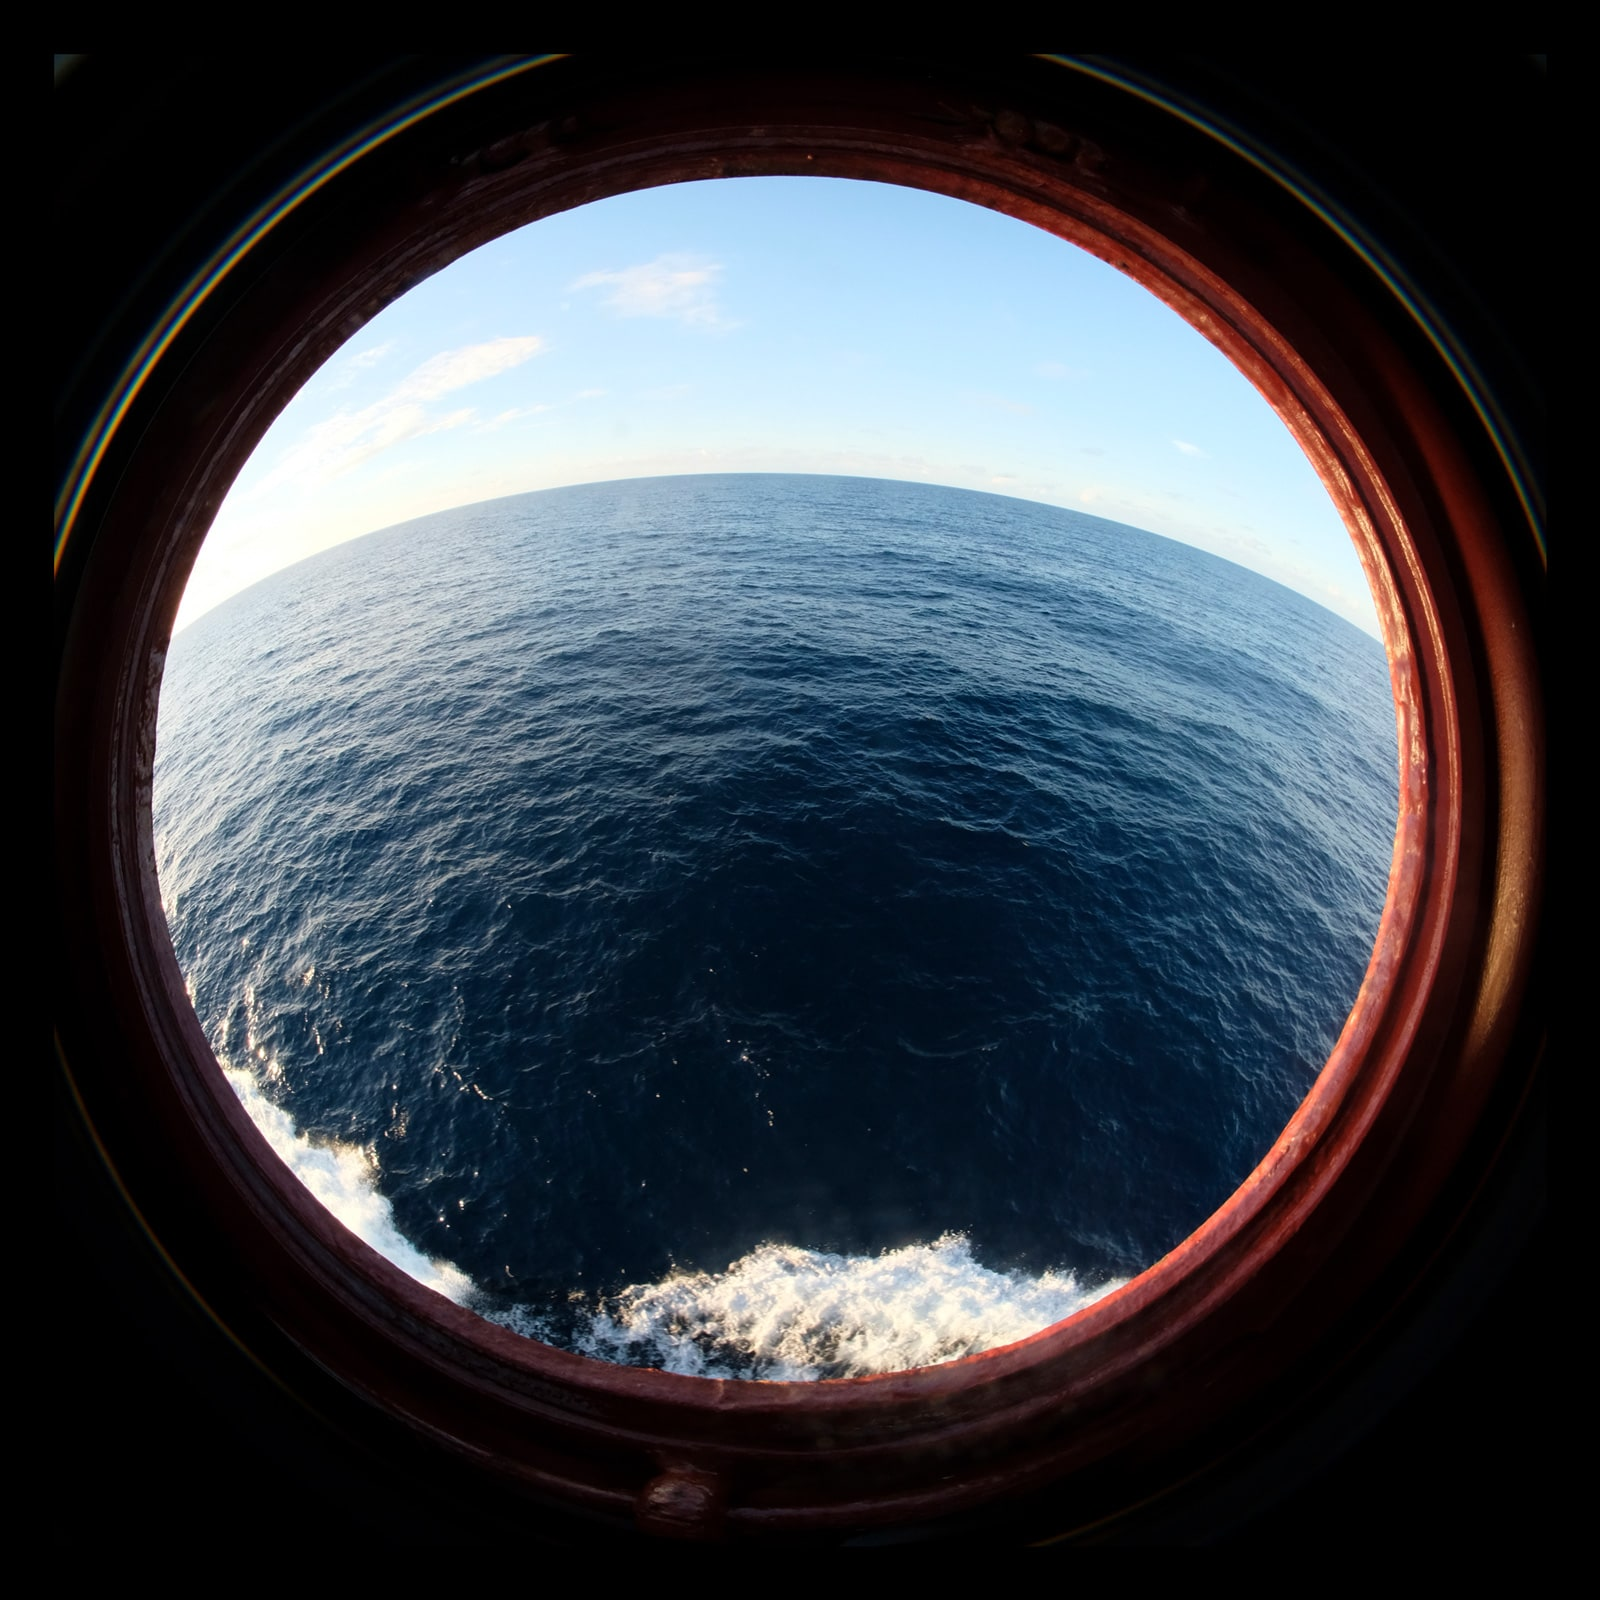 The Pacific Ocean at a depth of 4,500 metre.